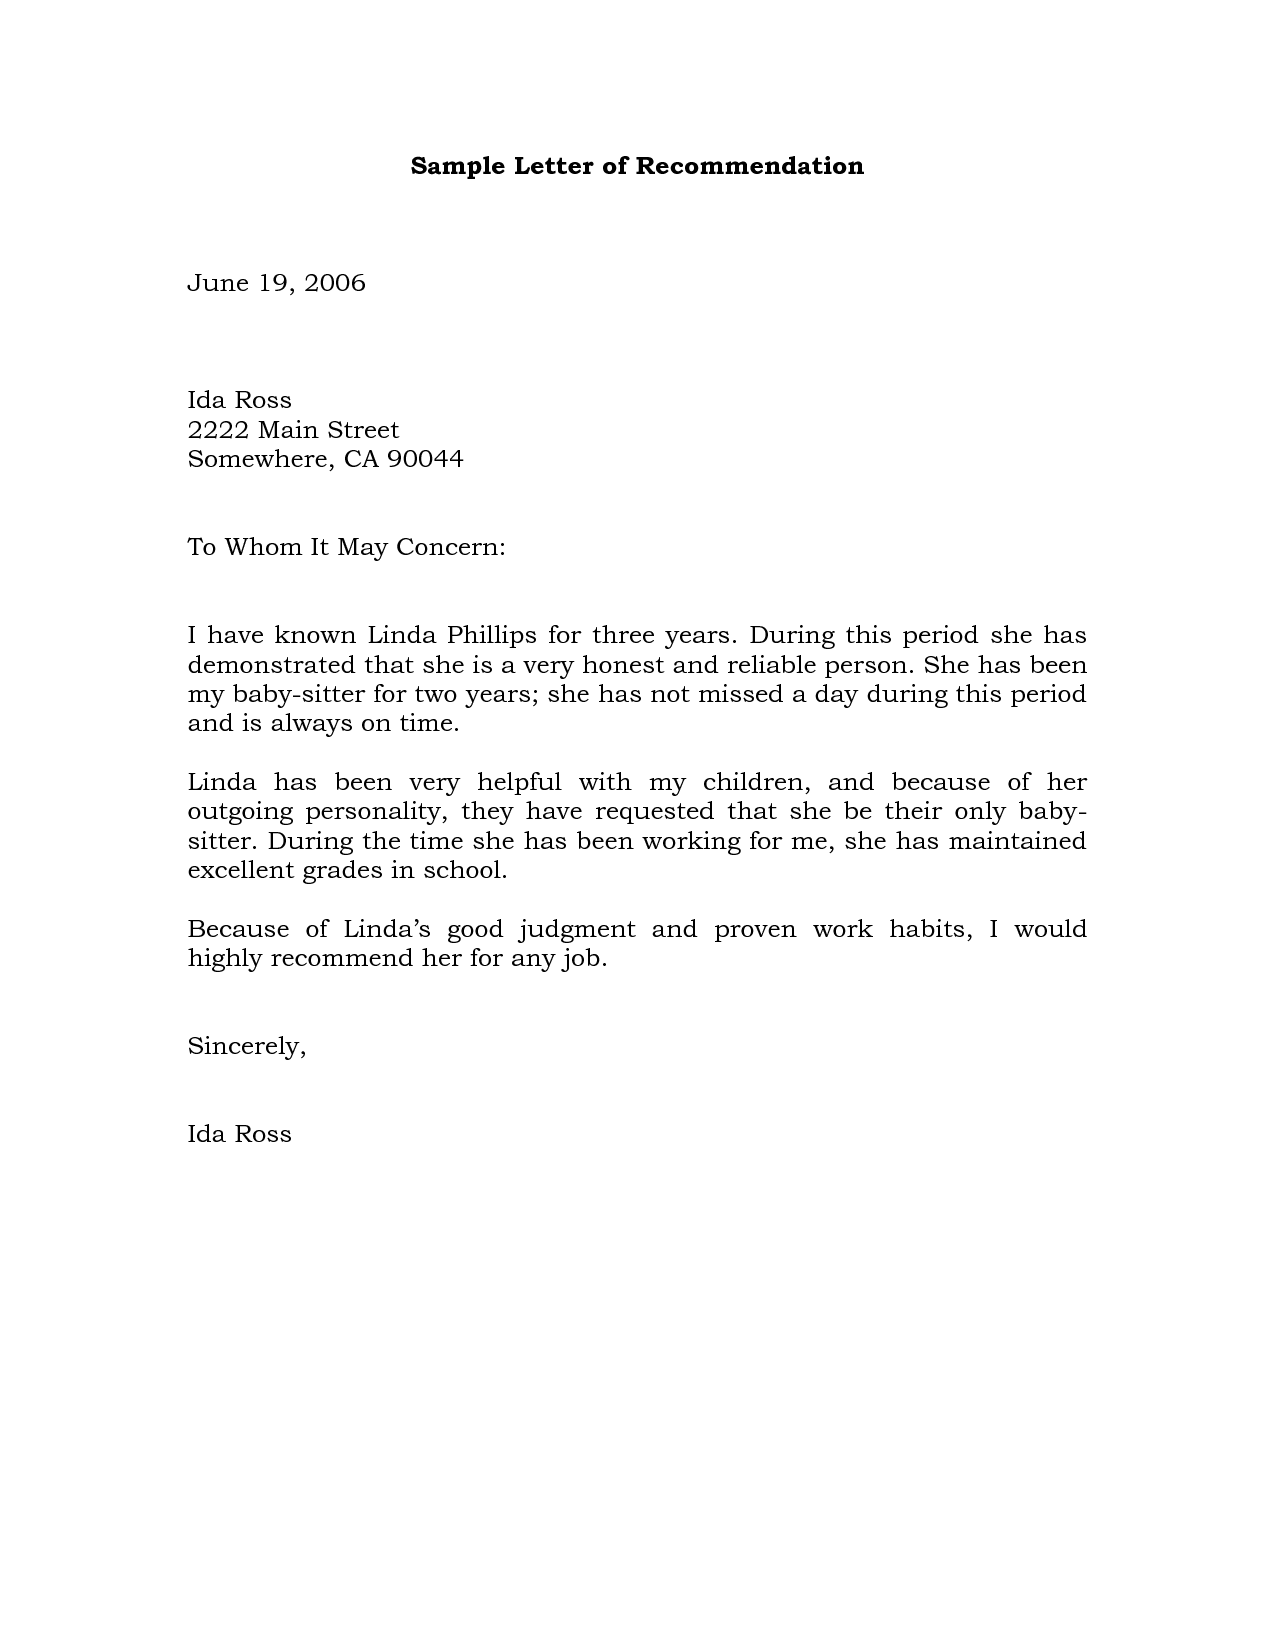 Business Recommendation Letter Here is a sample recommendation – Free Template for Letter of Recommendation